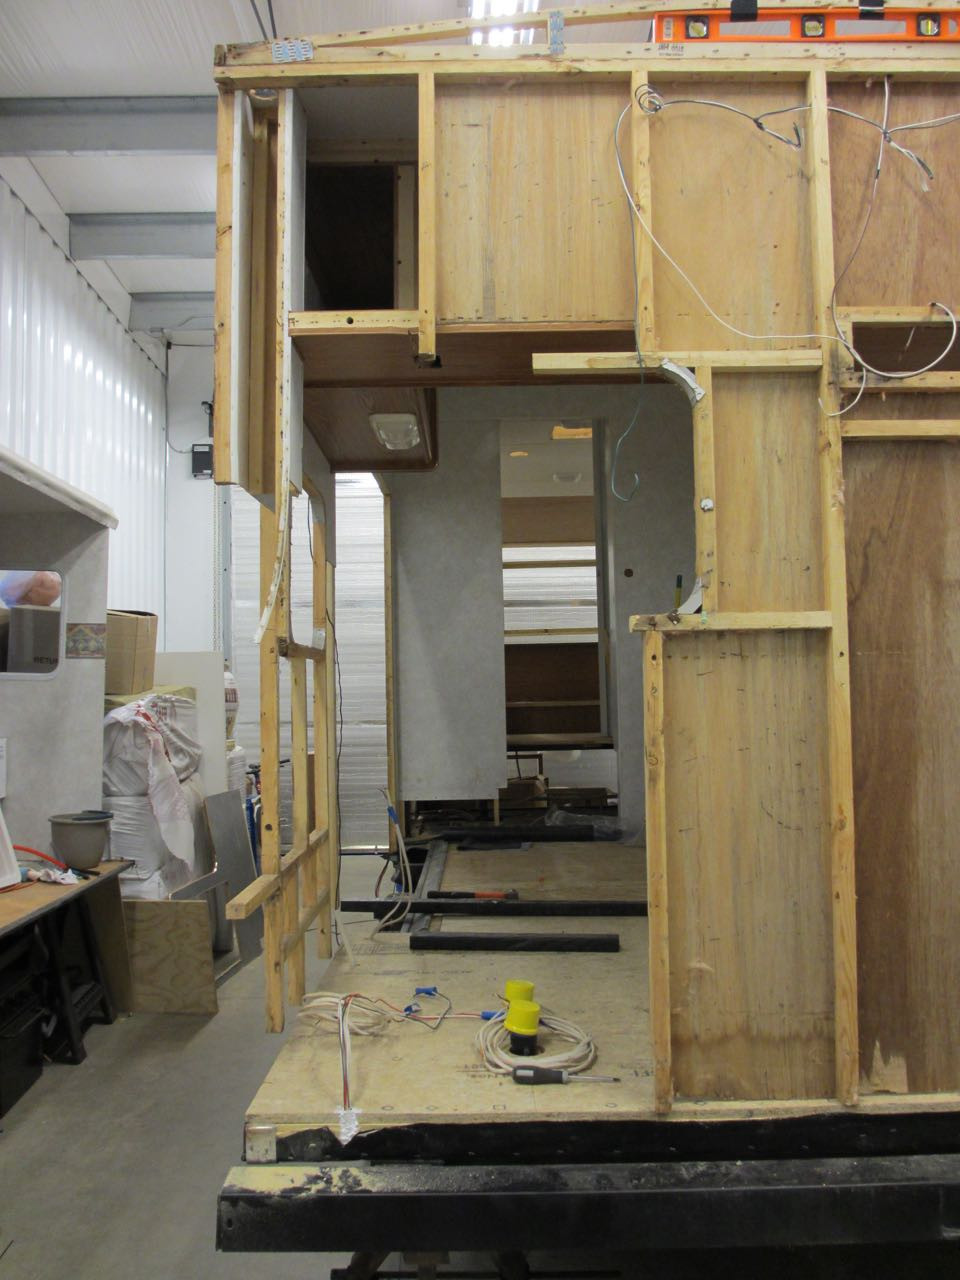 The most outer stud is missing and so are the beams for the kitchen window.